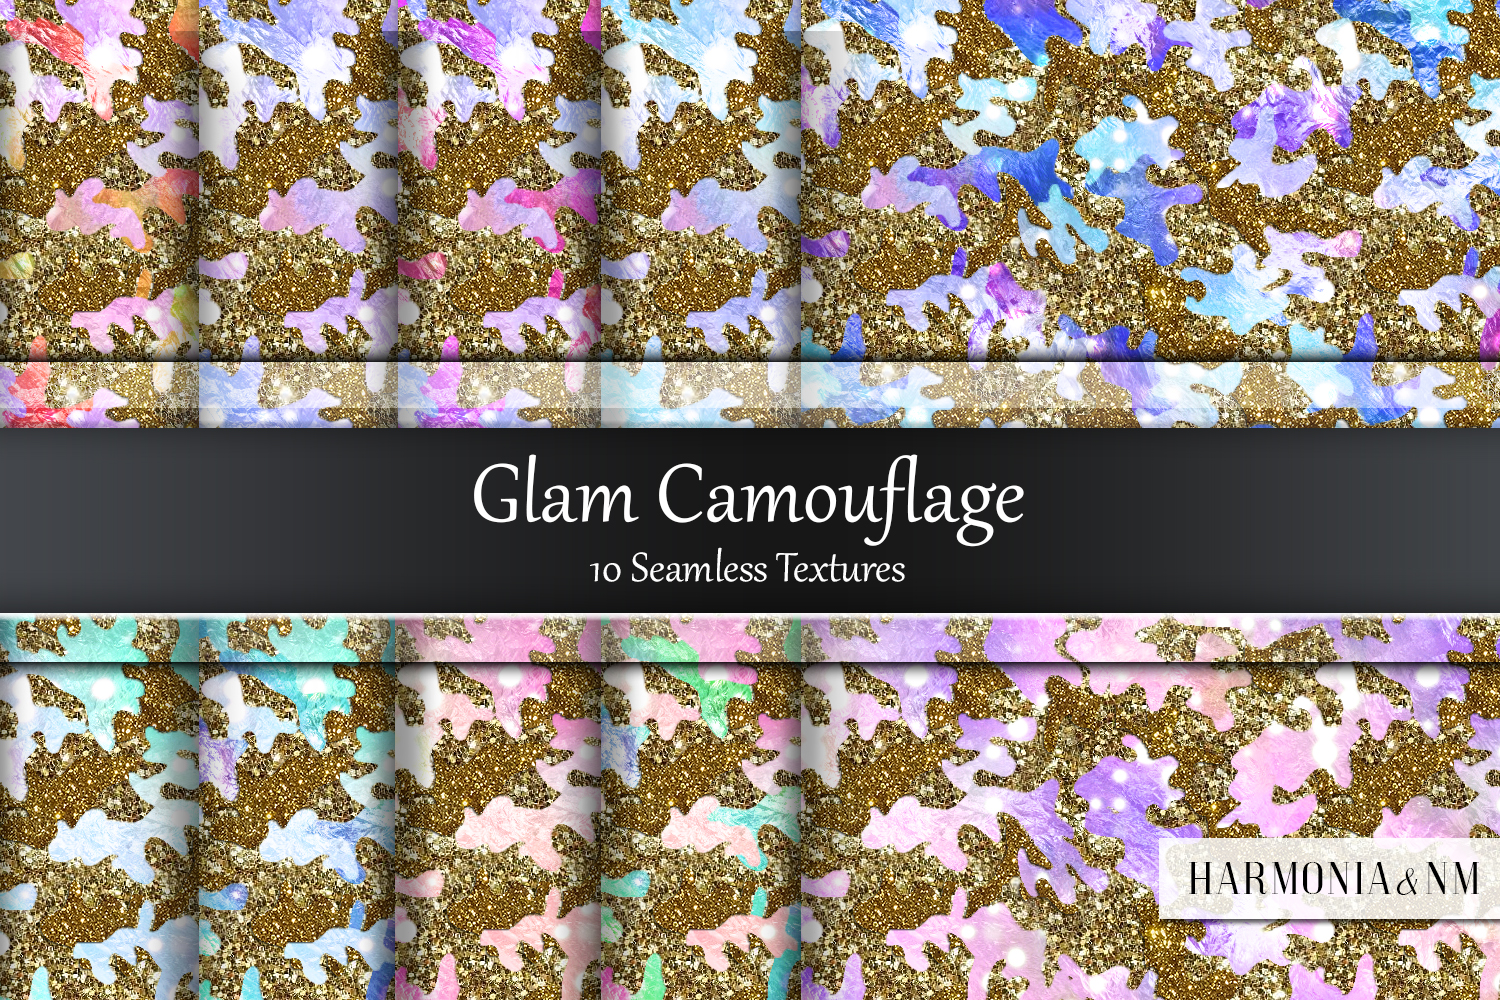 Glam Camouflage 10 Seamless Textures example image 1